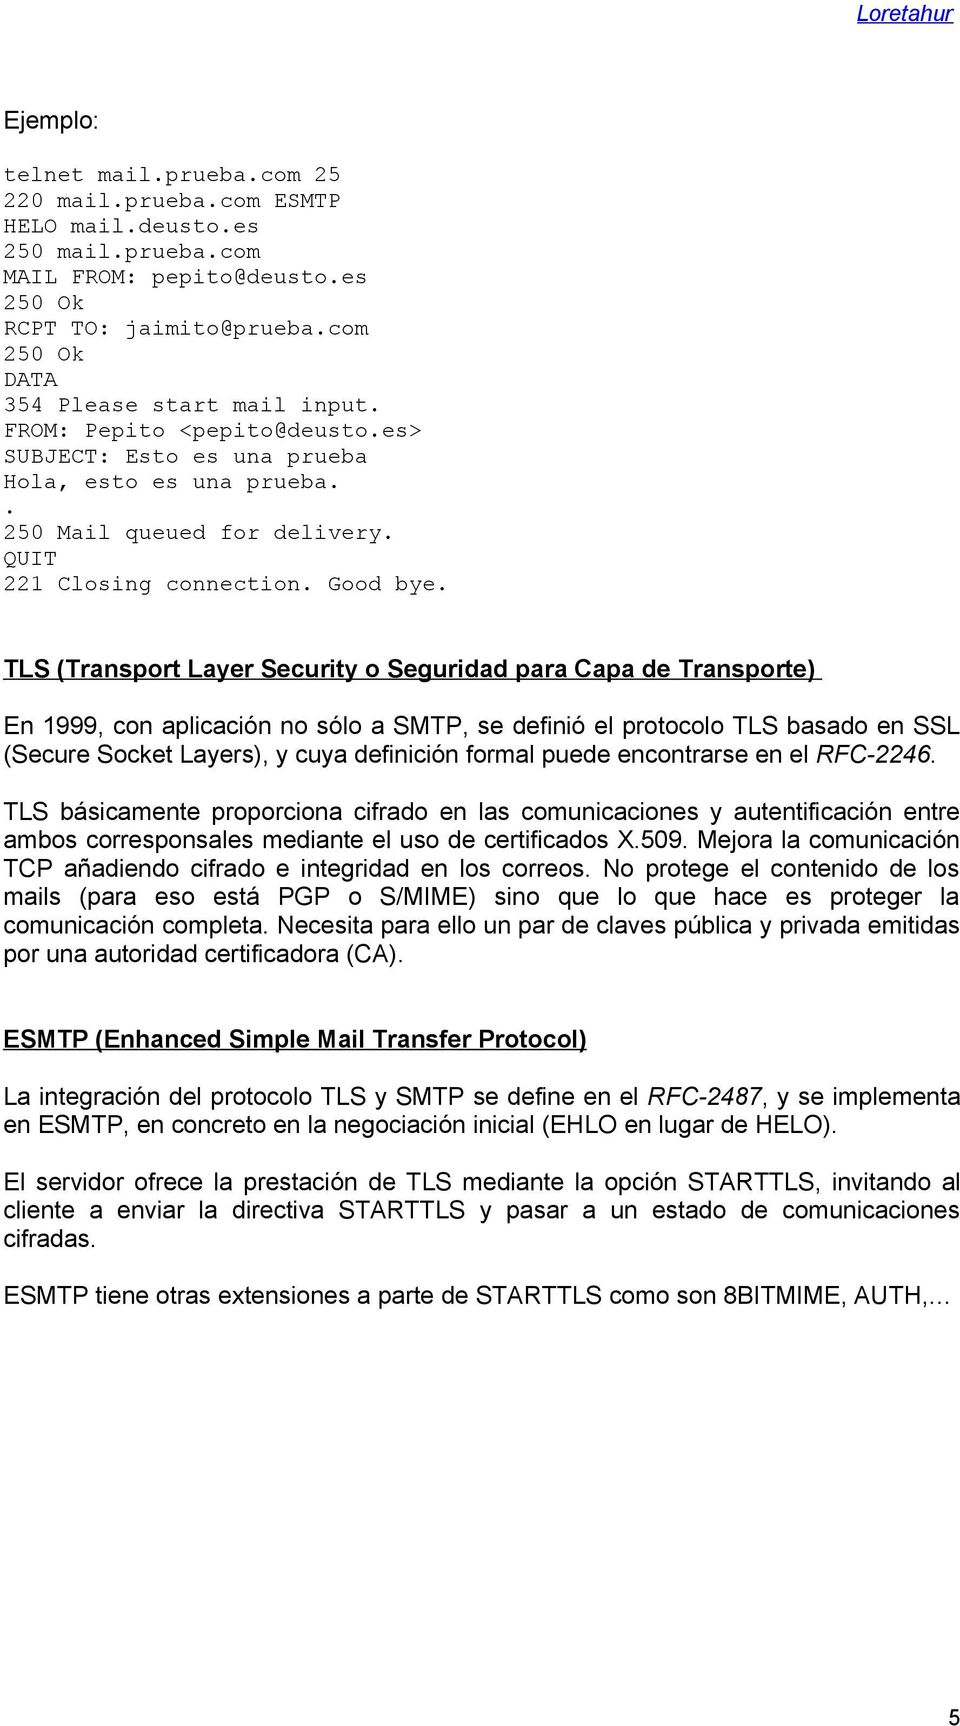 TLS (Transport Layer Security o Seguridad para Capa de Transporte) En 1999, con aplicación no sólo a SMTP, se definió el protocolo TLS basado en SSL (Secure Socket Layers), y cuya definición formal